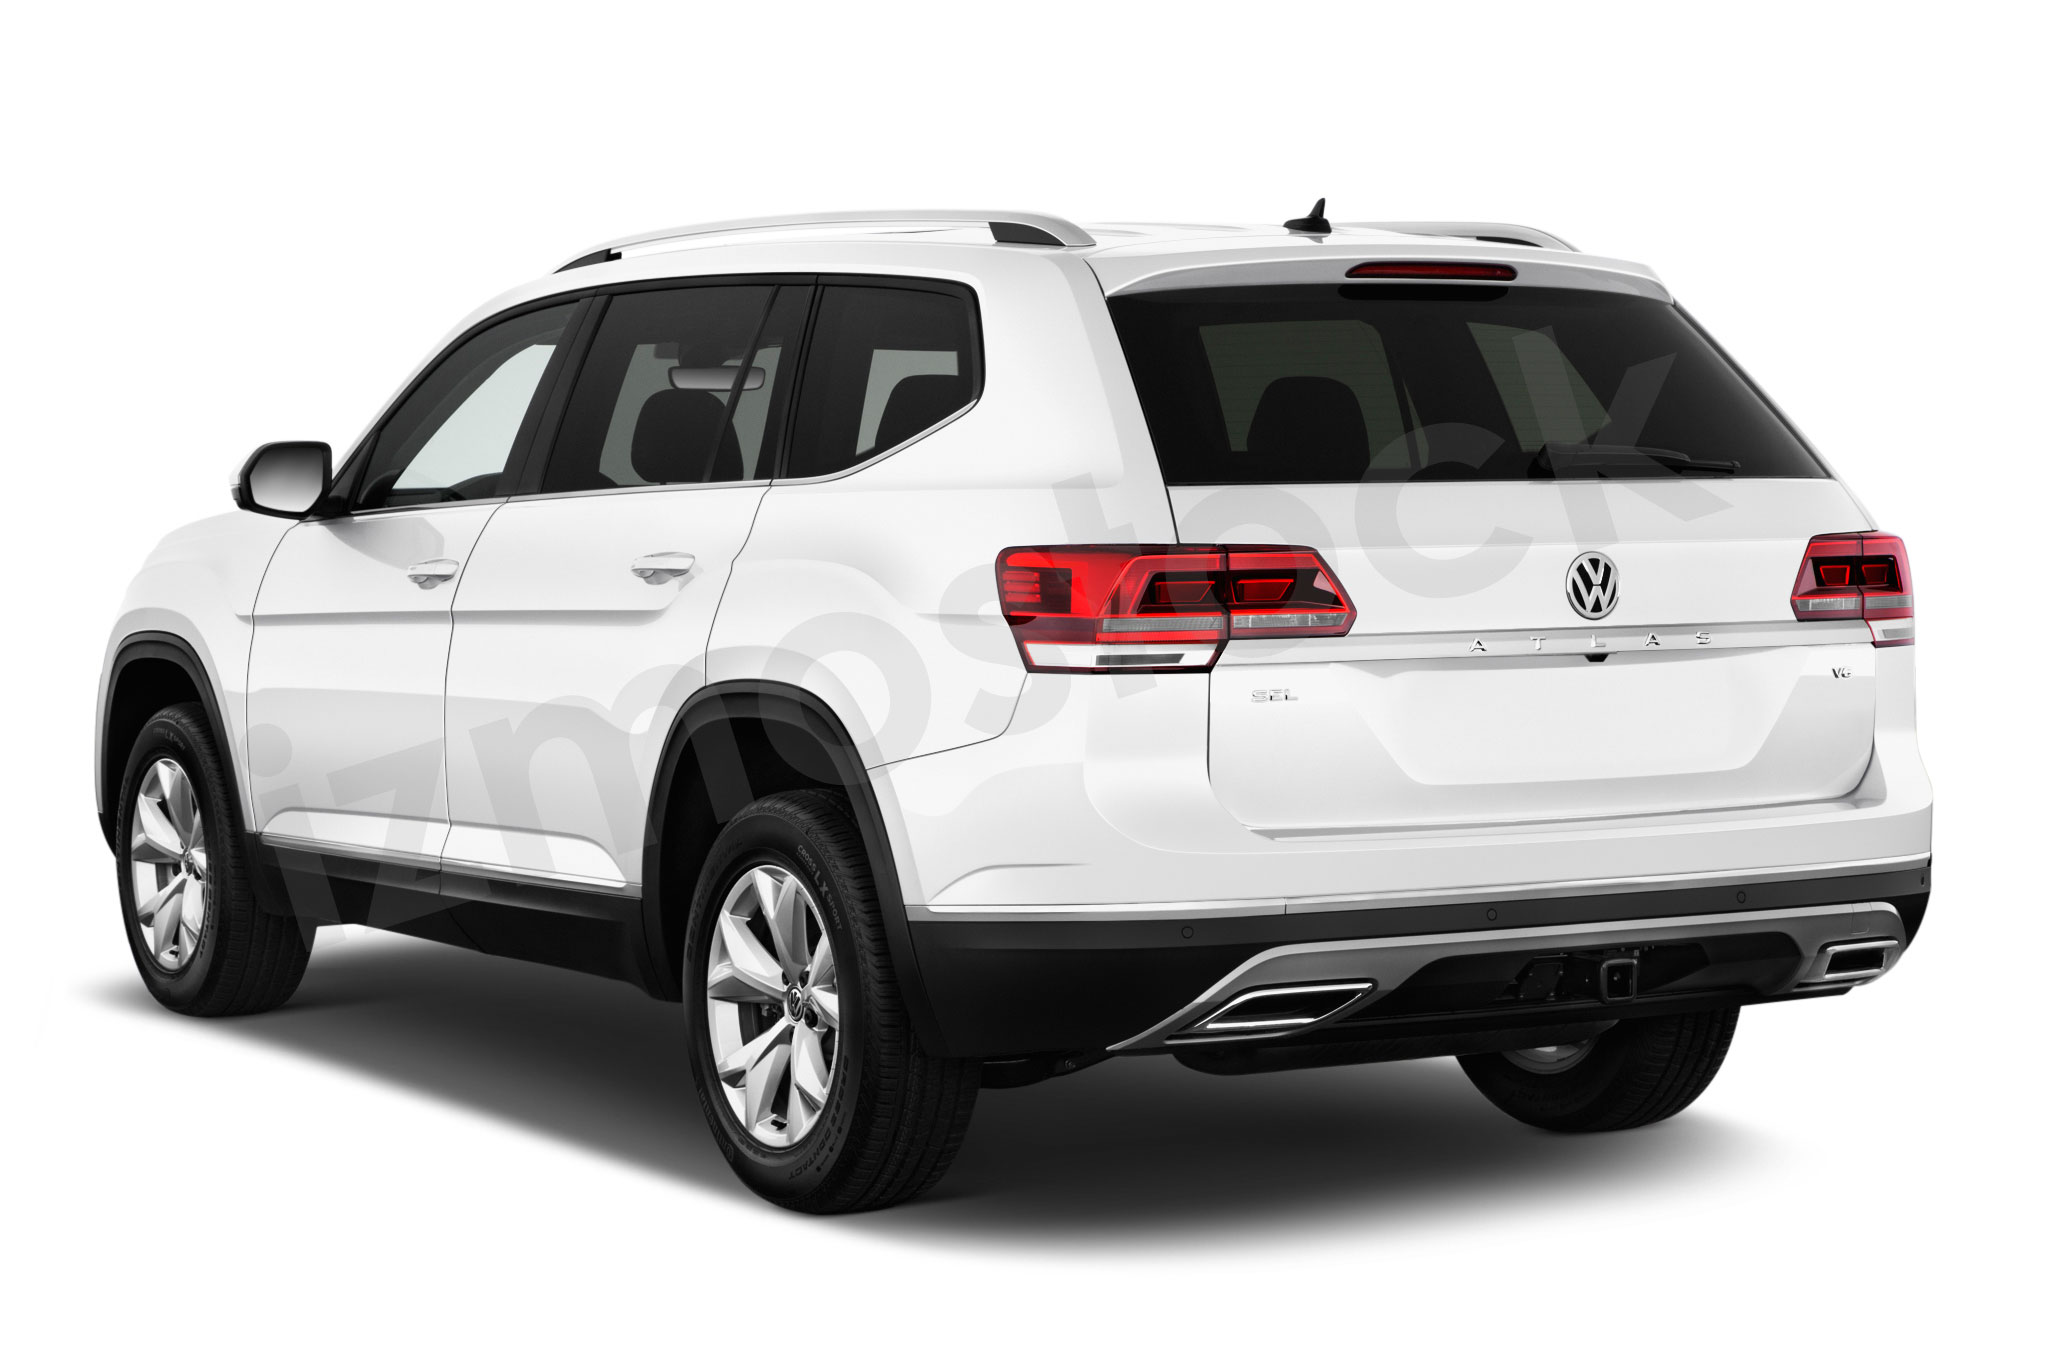 2018 vw atlas review images price interior and specs. Black Bedroom Furniture Sets. Home Design Ideas